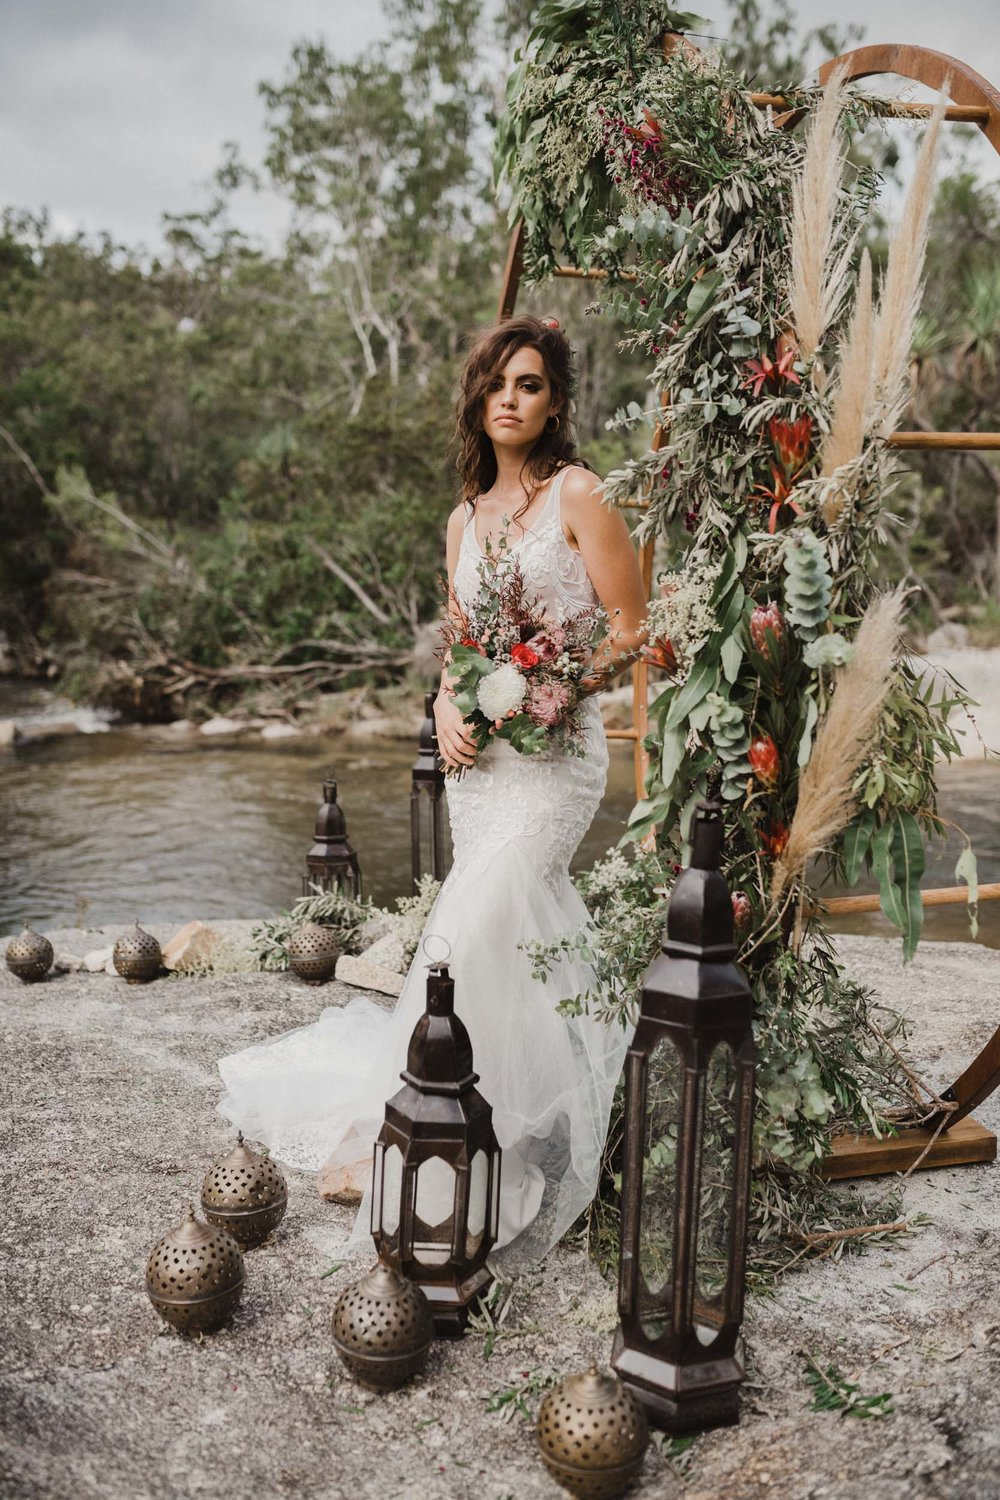 The Raw Photographer - Cairns Wedding Photographer - Brides Styled Shoot - Dress Jonovia Bridal - Hair Makeup Ideas-23.jpg